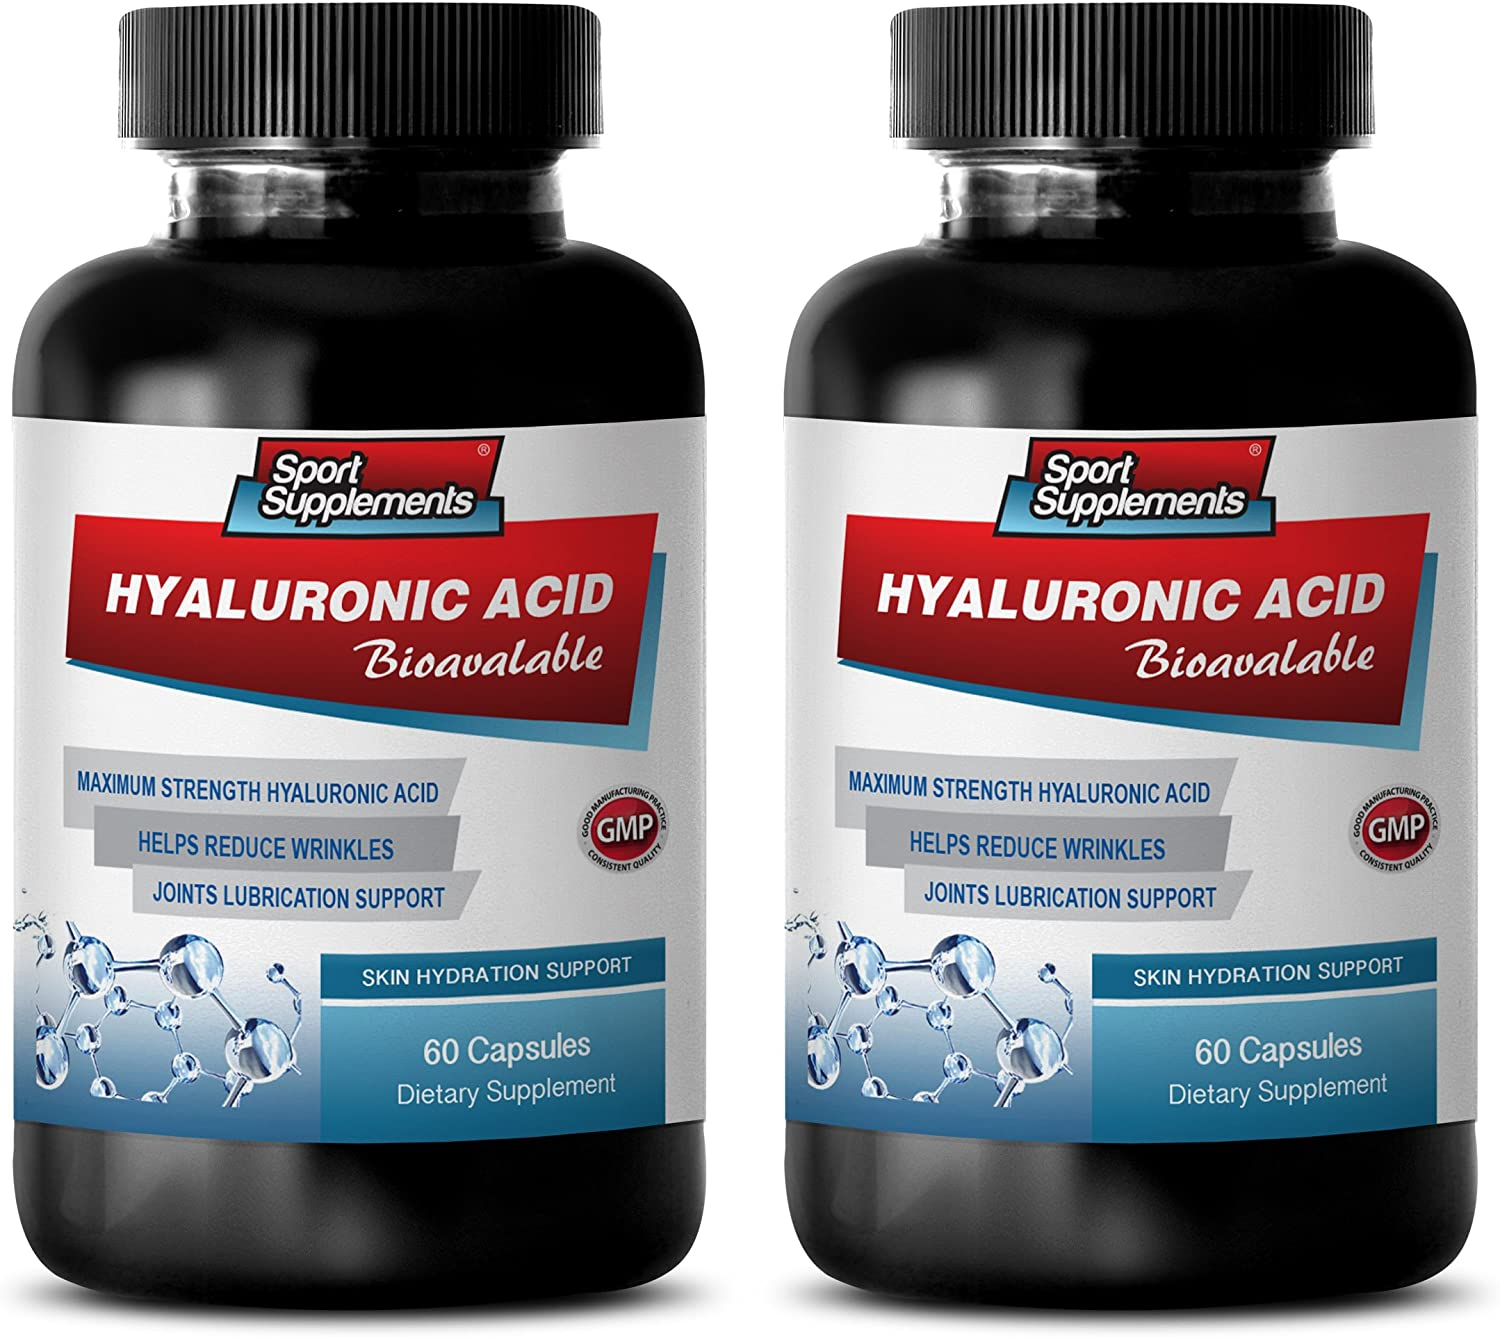 Joint Supplements hyaluronic Acid - HYALURONIC Acid BIO-Available - Skin Hydration Support - hyaluronic Acid Supplements for Joints - 2 Bottles 120 Capsules